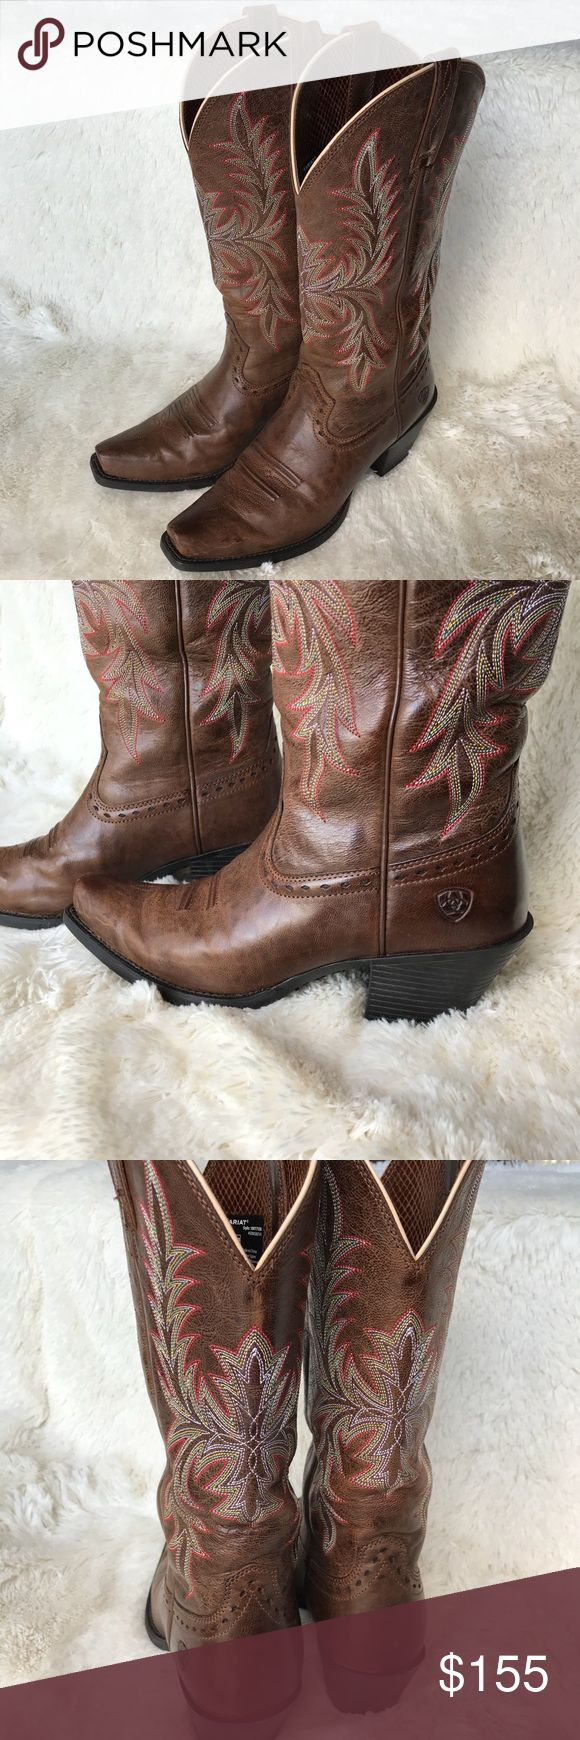 Ariat Round Up Maddox Western Boots Women's cowboy/cowgirl boots. Size 7. Color is called wood. Red, pink, yellow, blue, white stitching. Snip toe. Worn twice, very minimal signs of wear. Ariat Shoes Heeled Boots